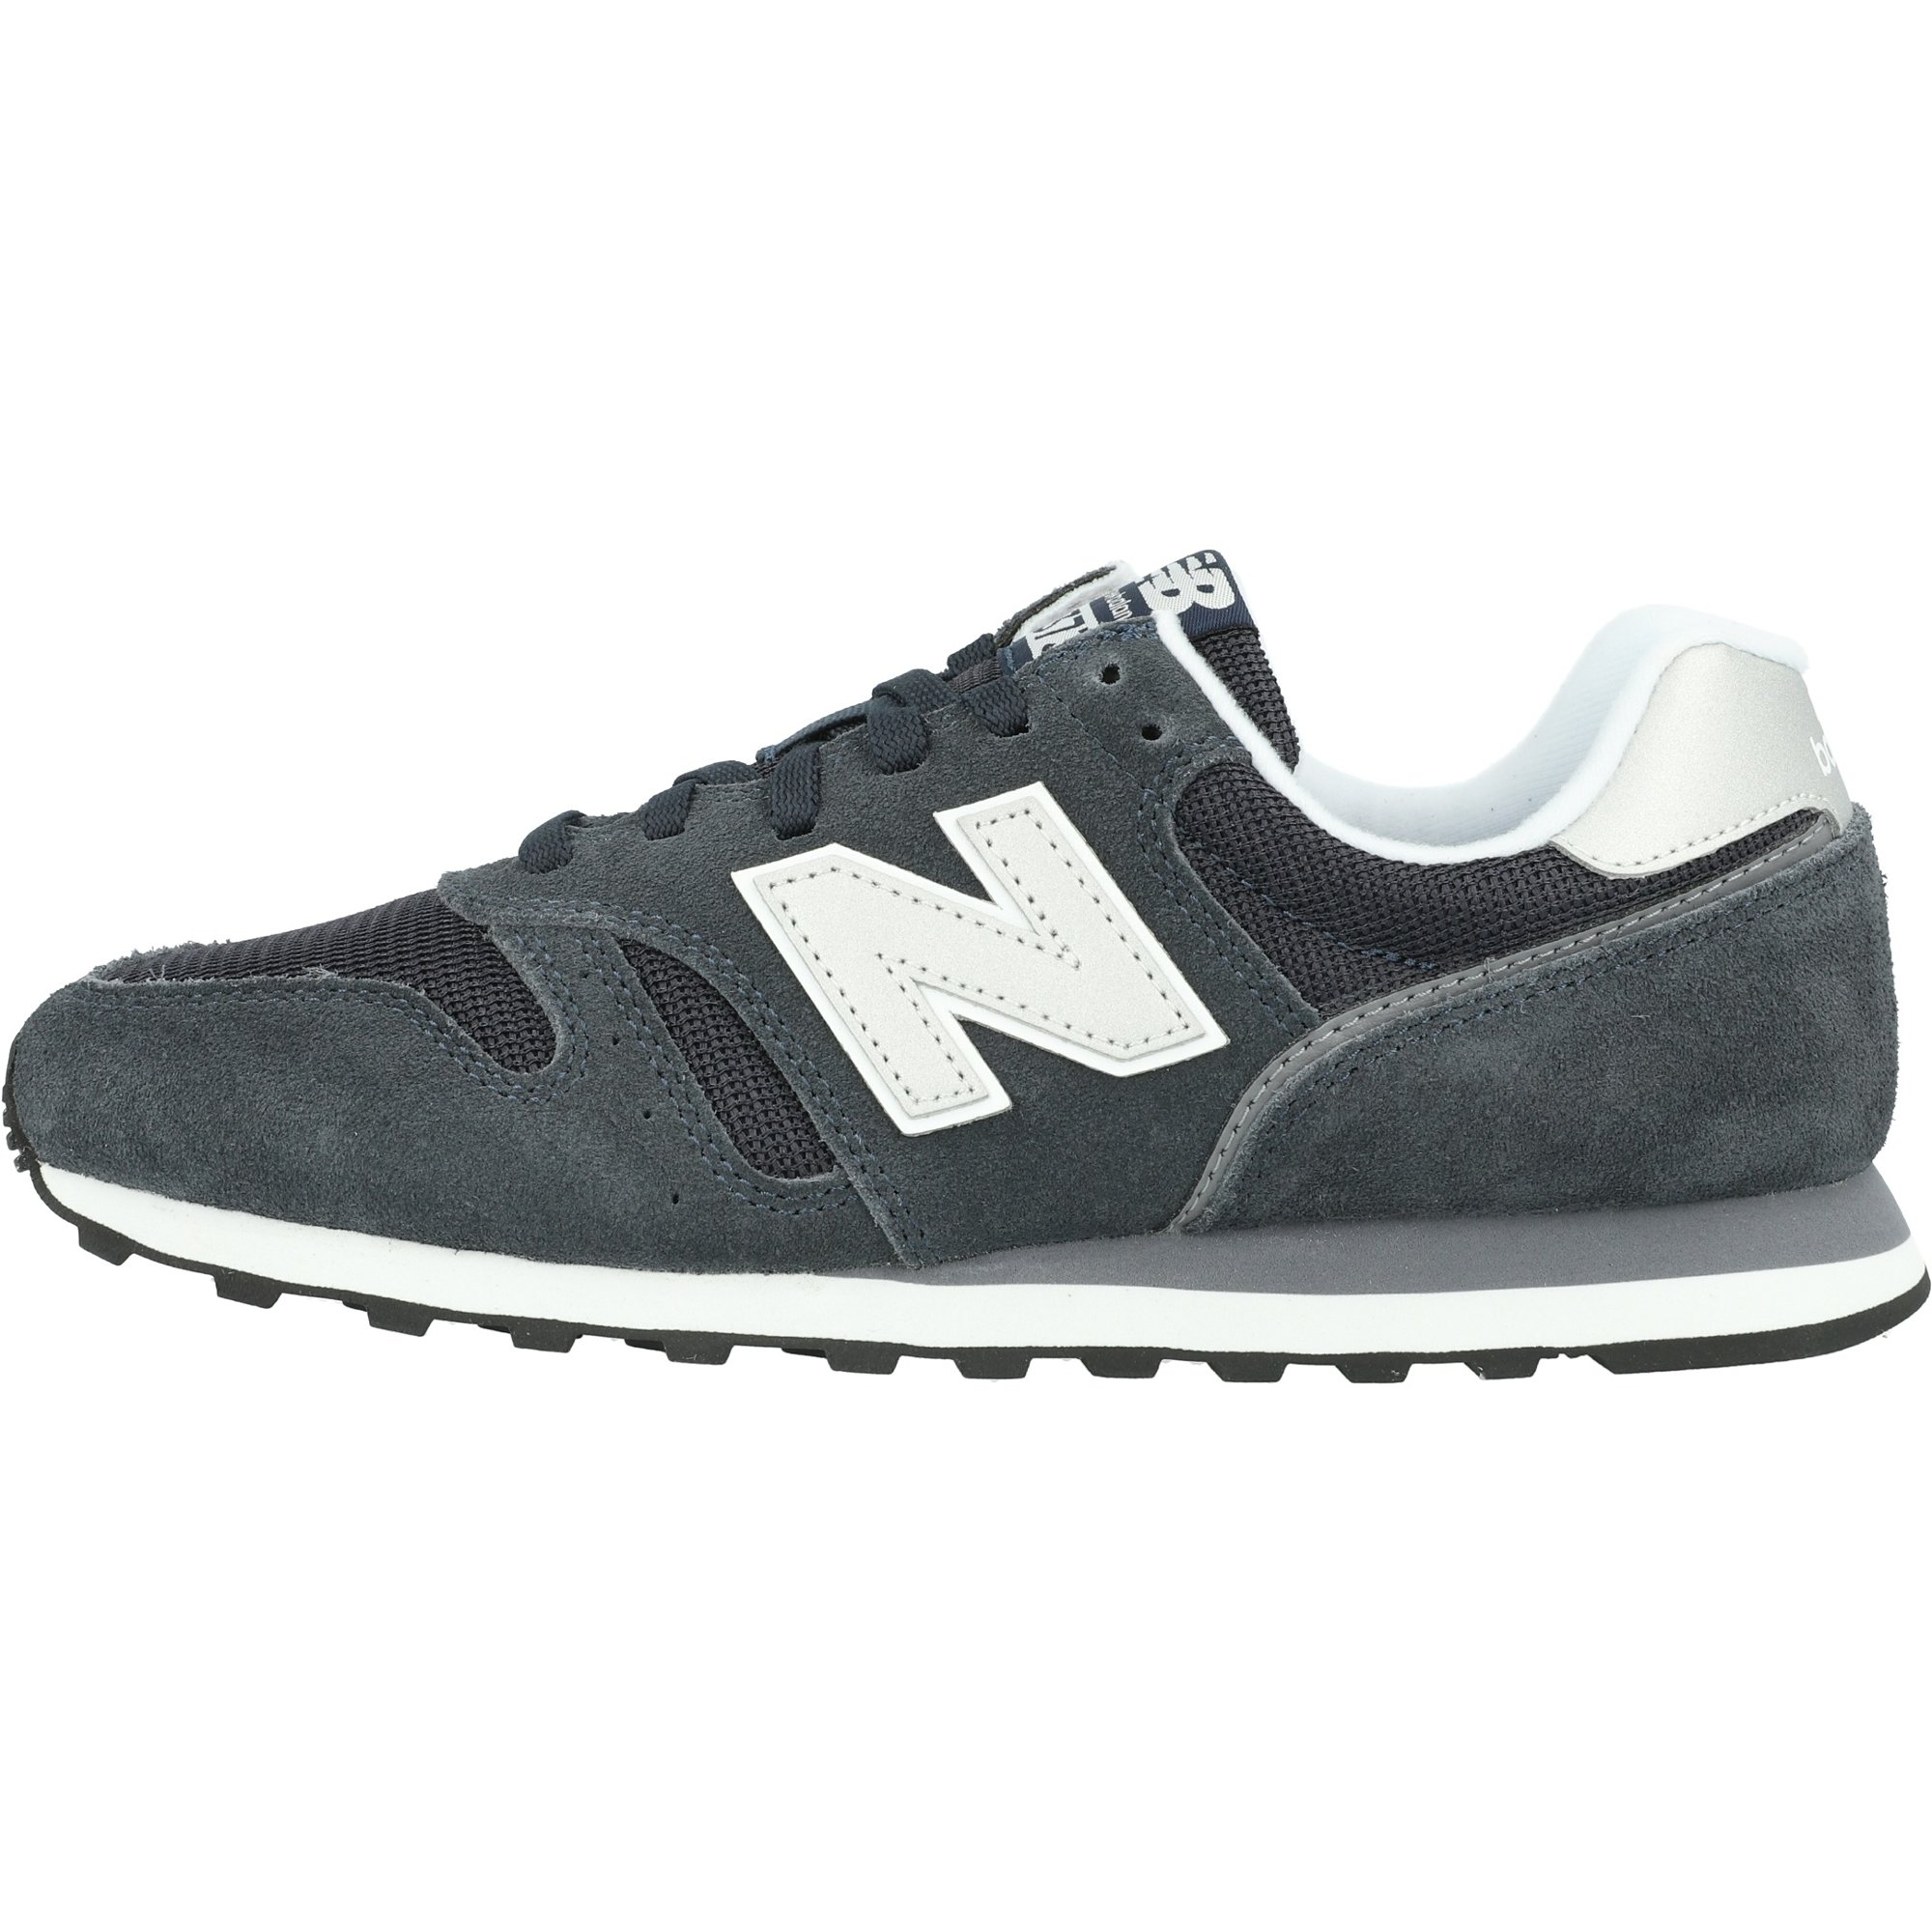 New Balance 373 Outerspace/White Suede